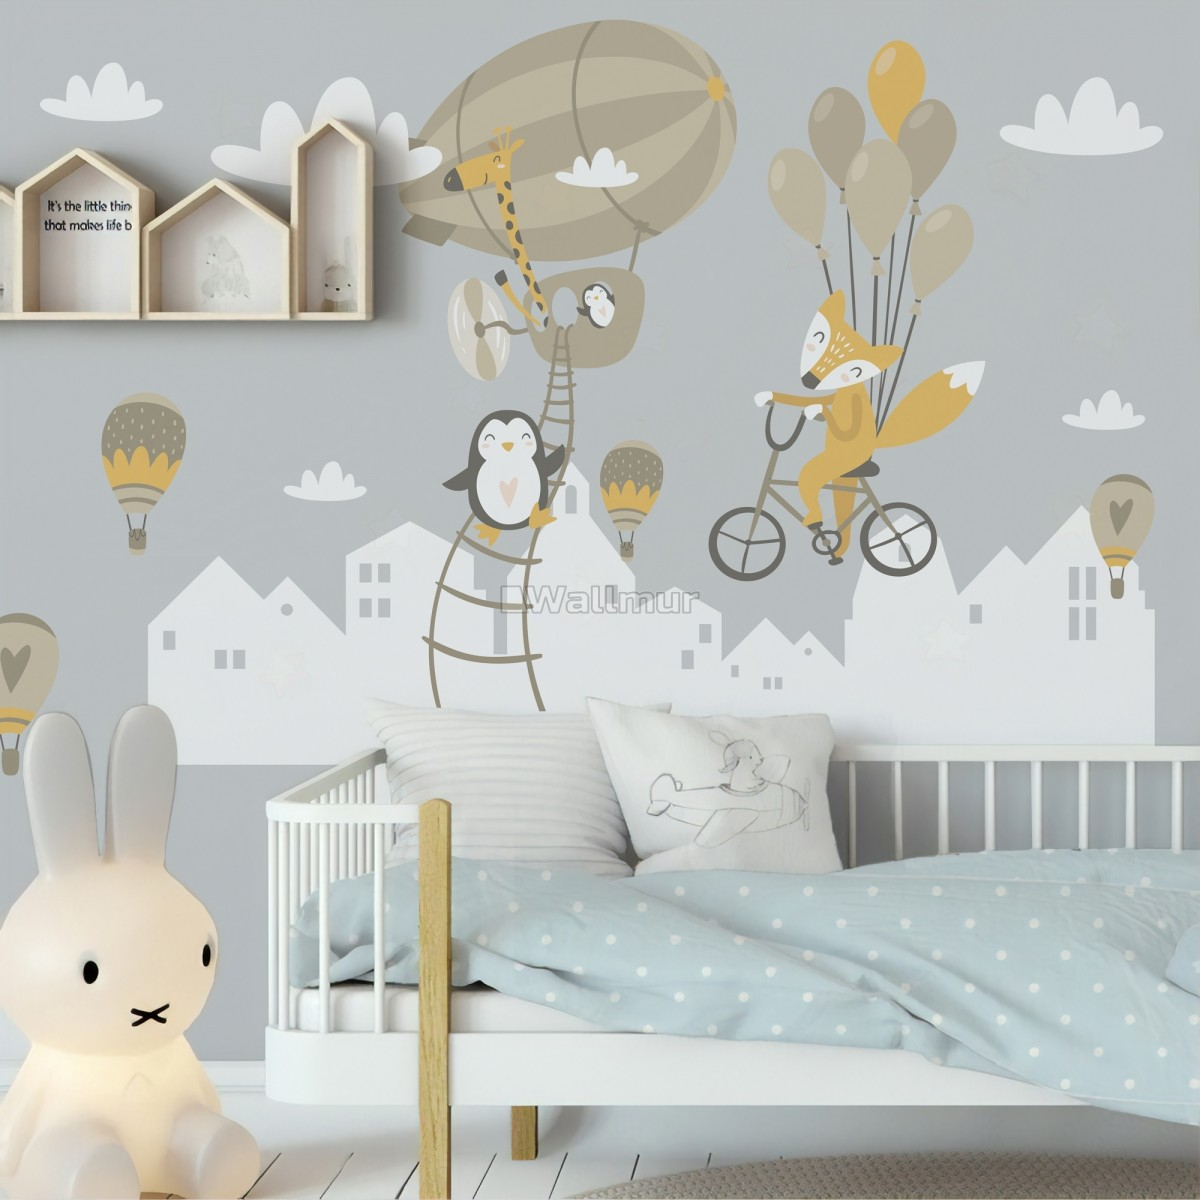 Nursery Hot Air Balloon and White Home Silhouette Wall Decal Sticker